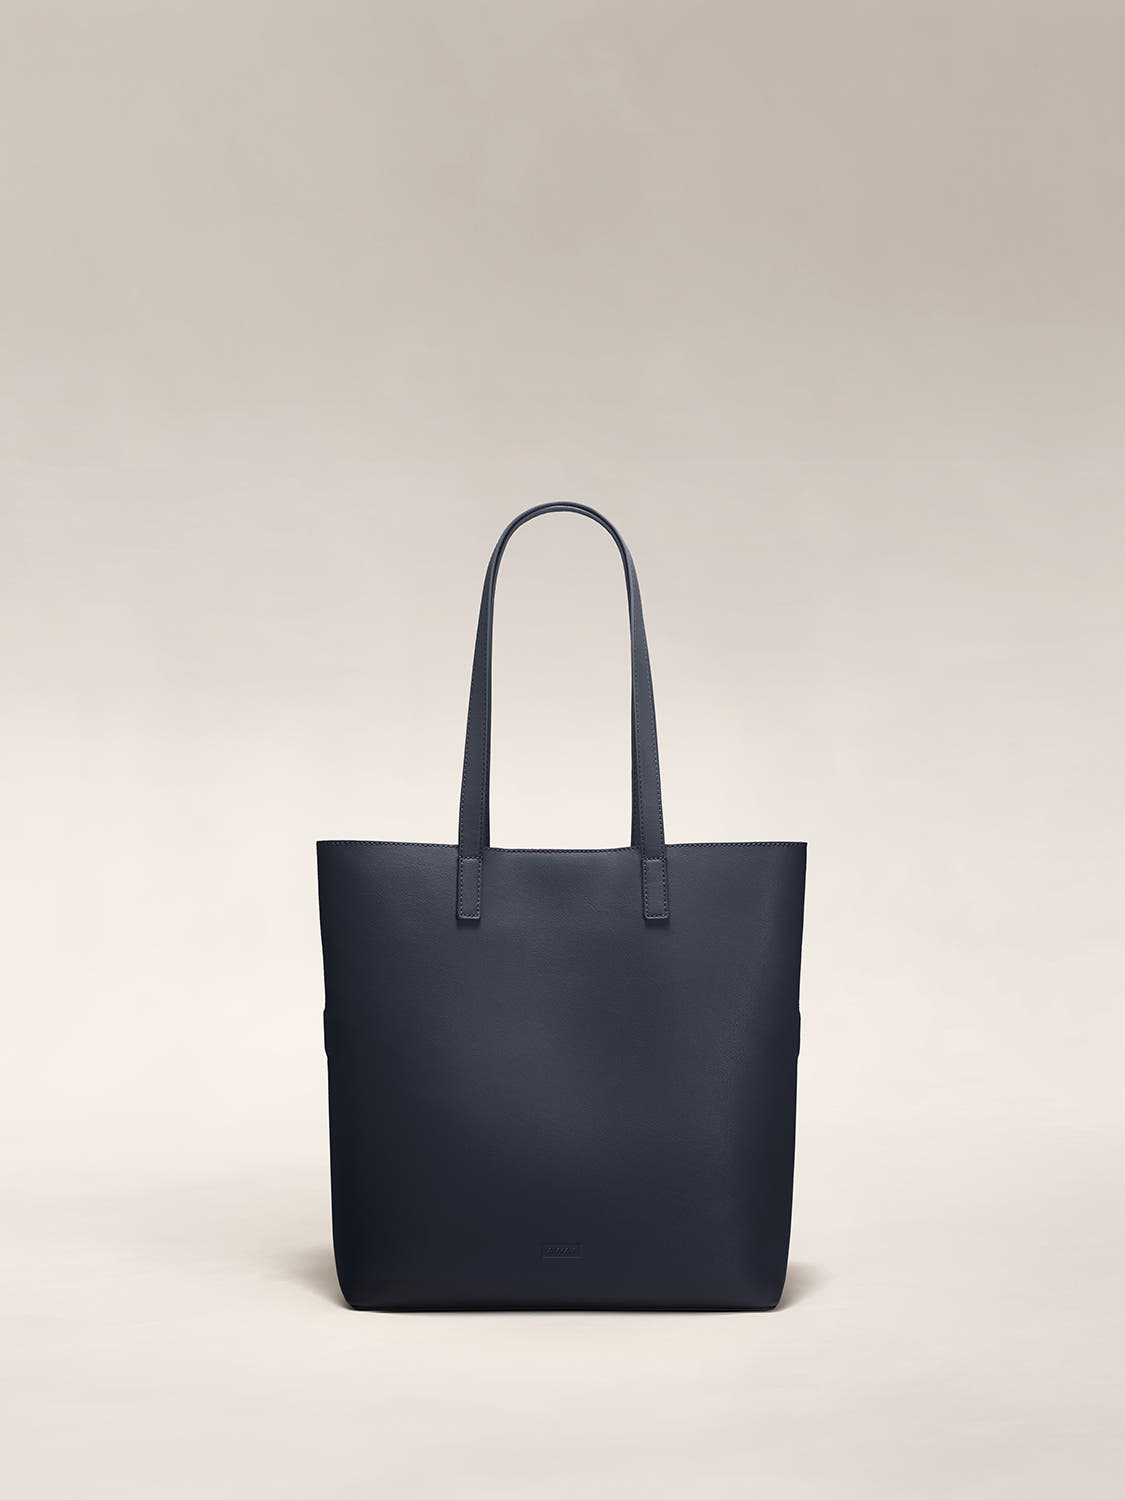 A navy tote shoulder bag in leather.